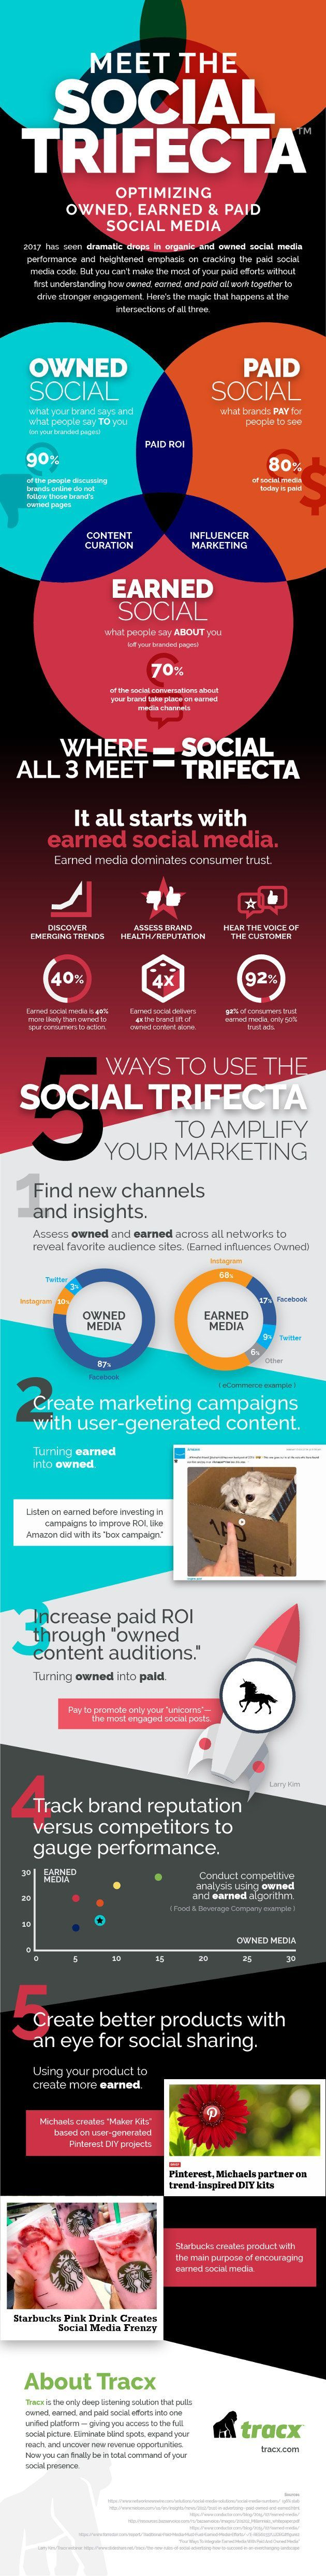 Owned, earned, and paid social media are often thought of as separate tactics of a brand's social media marketing strategy. But all three can work together to deliver the best results. Find more stuff: dynamicwebmarketingsecrets.com